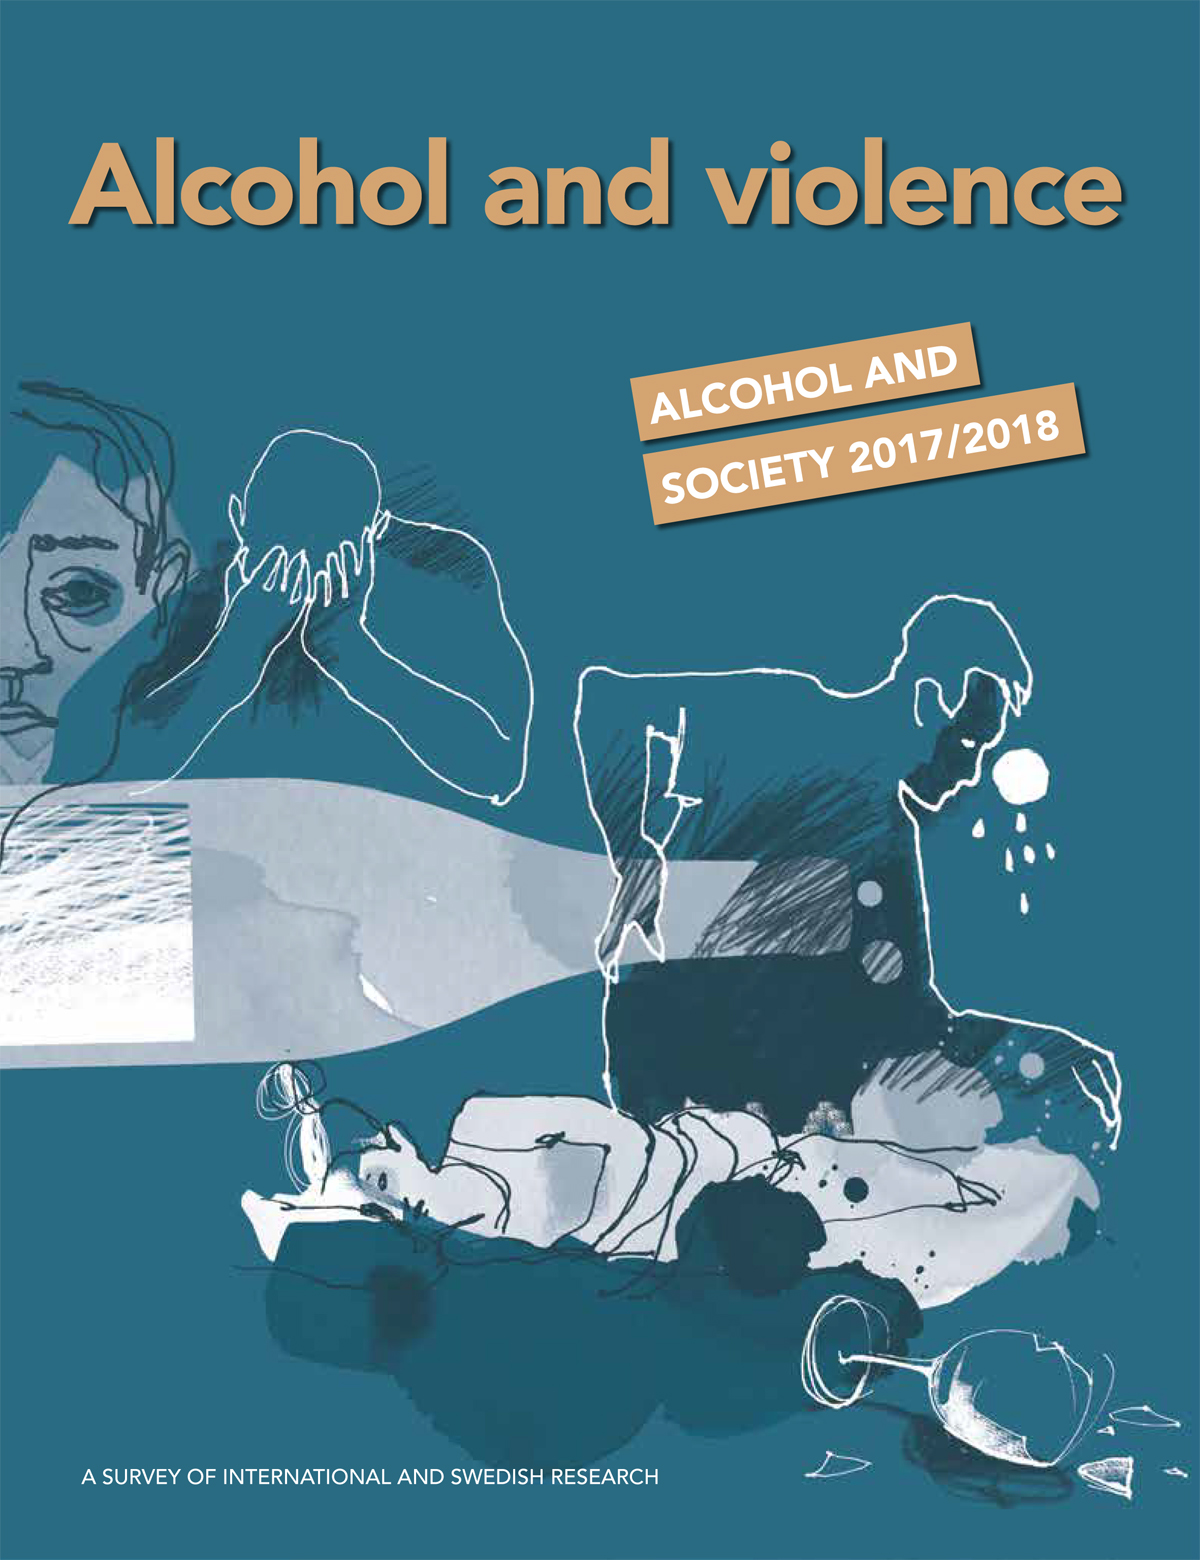 Front page Alcohol and violence - IOGT-NTO - 2017-1 1200p.jpg